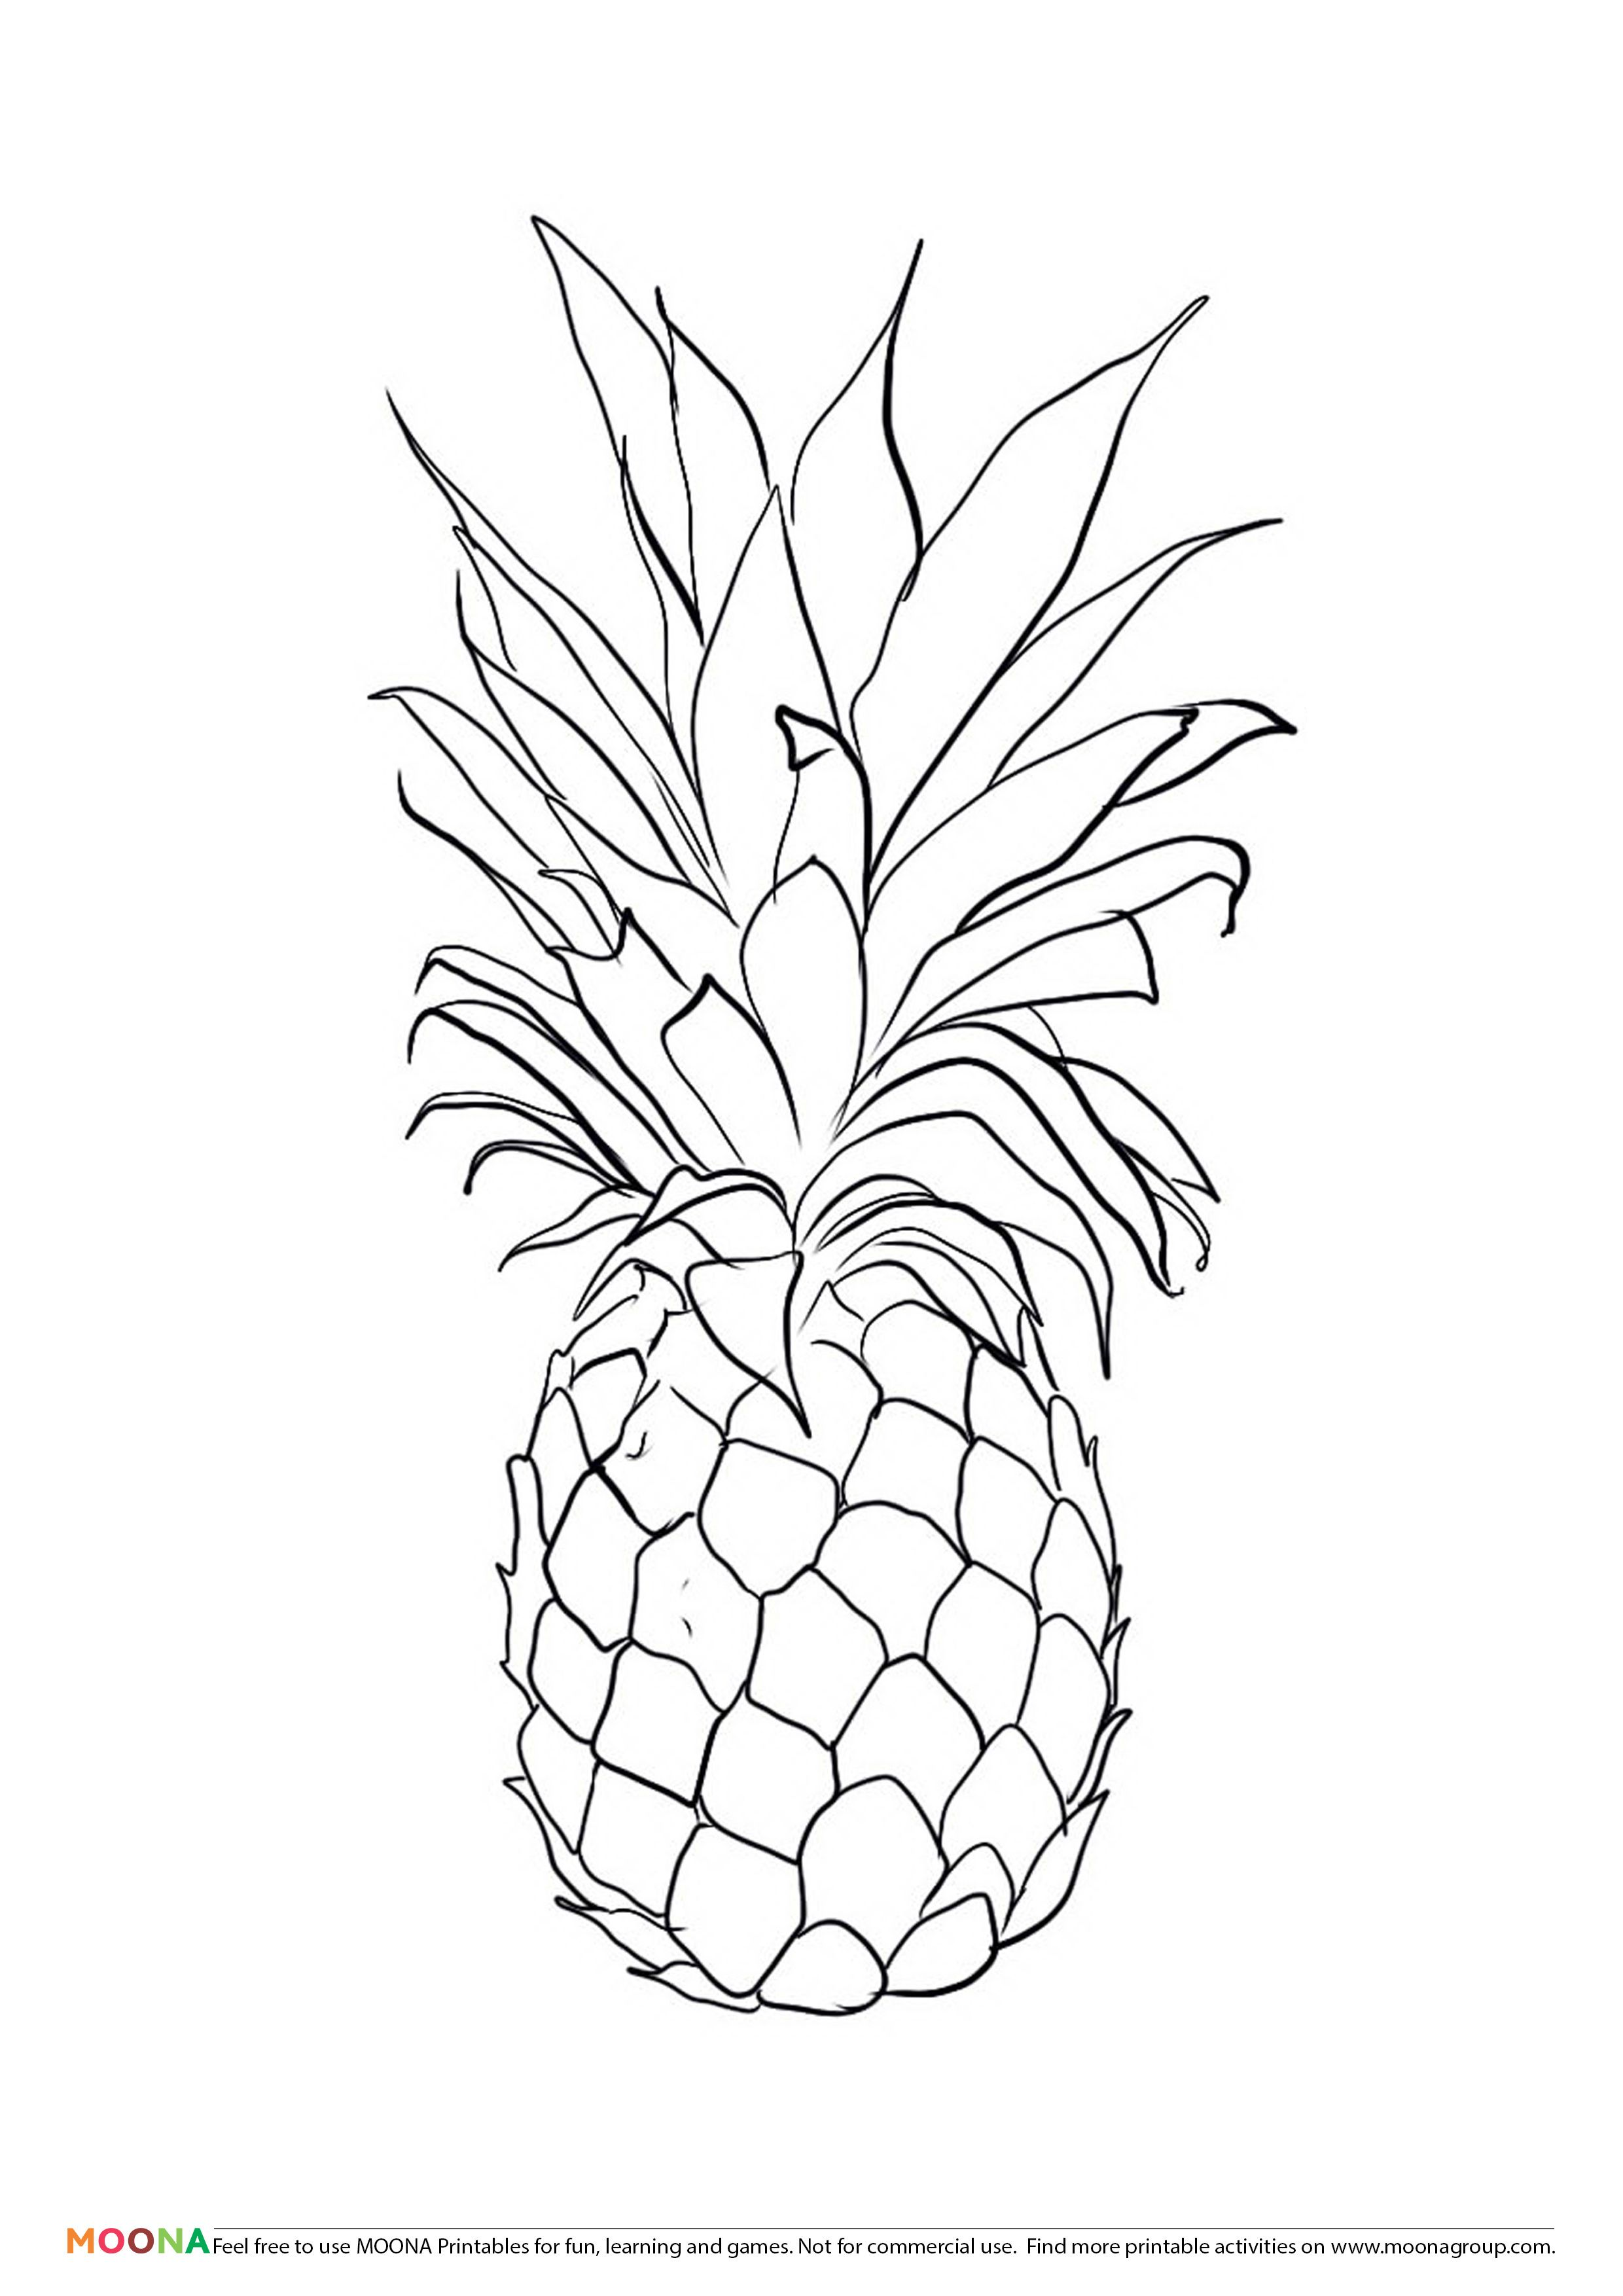 Free Printable Coloring Pages for toddlers and preschoolers pineapple. Click